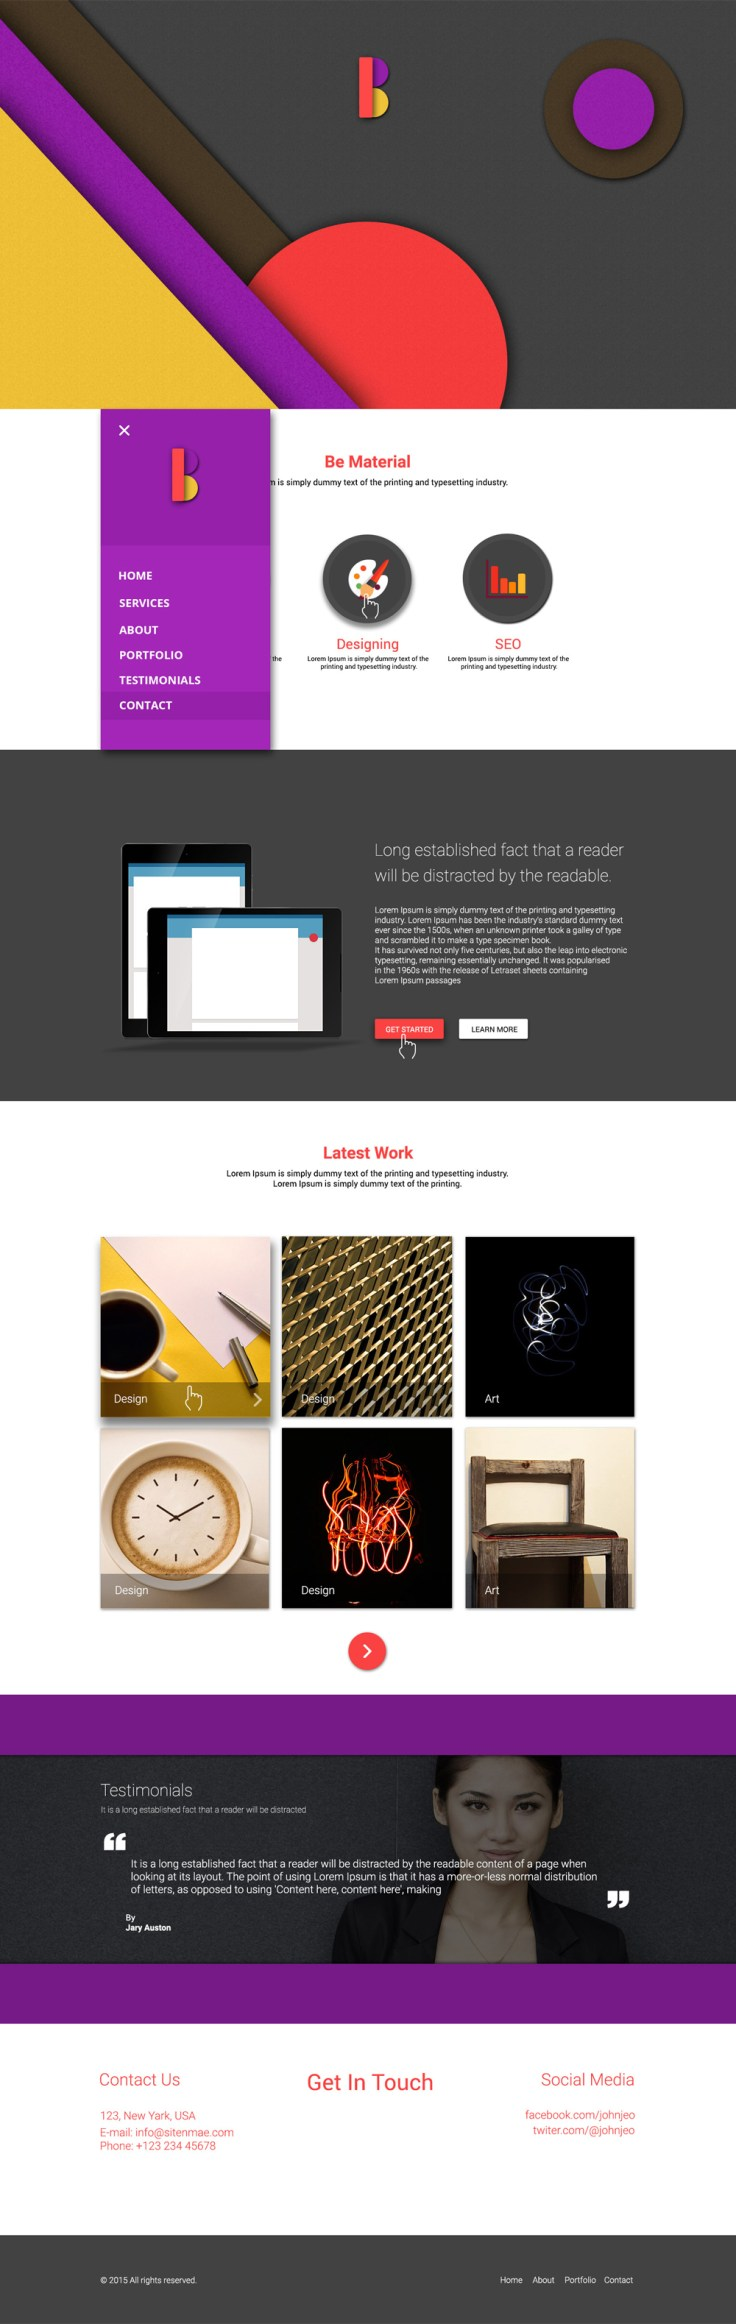 Be Material – One Page Material Template PSD